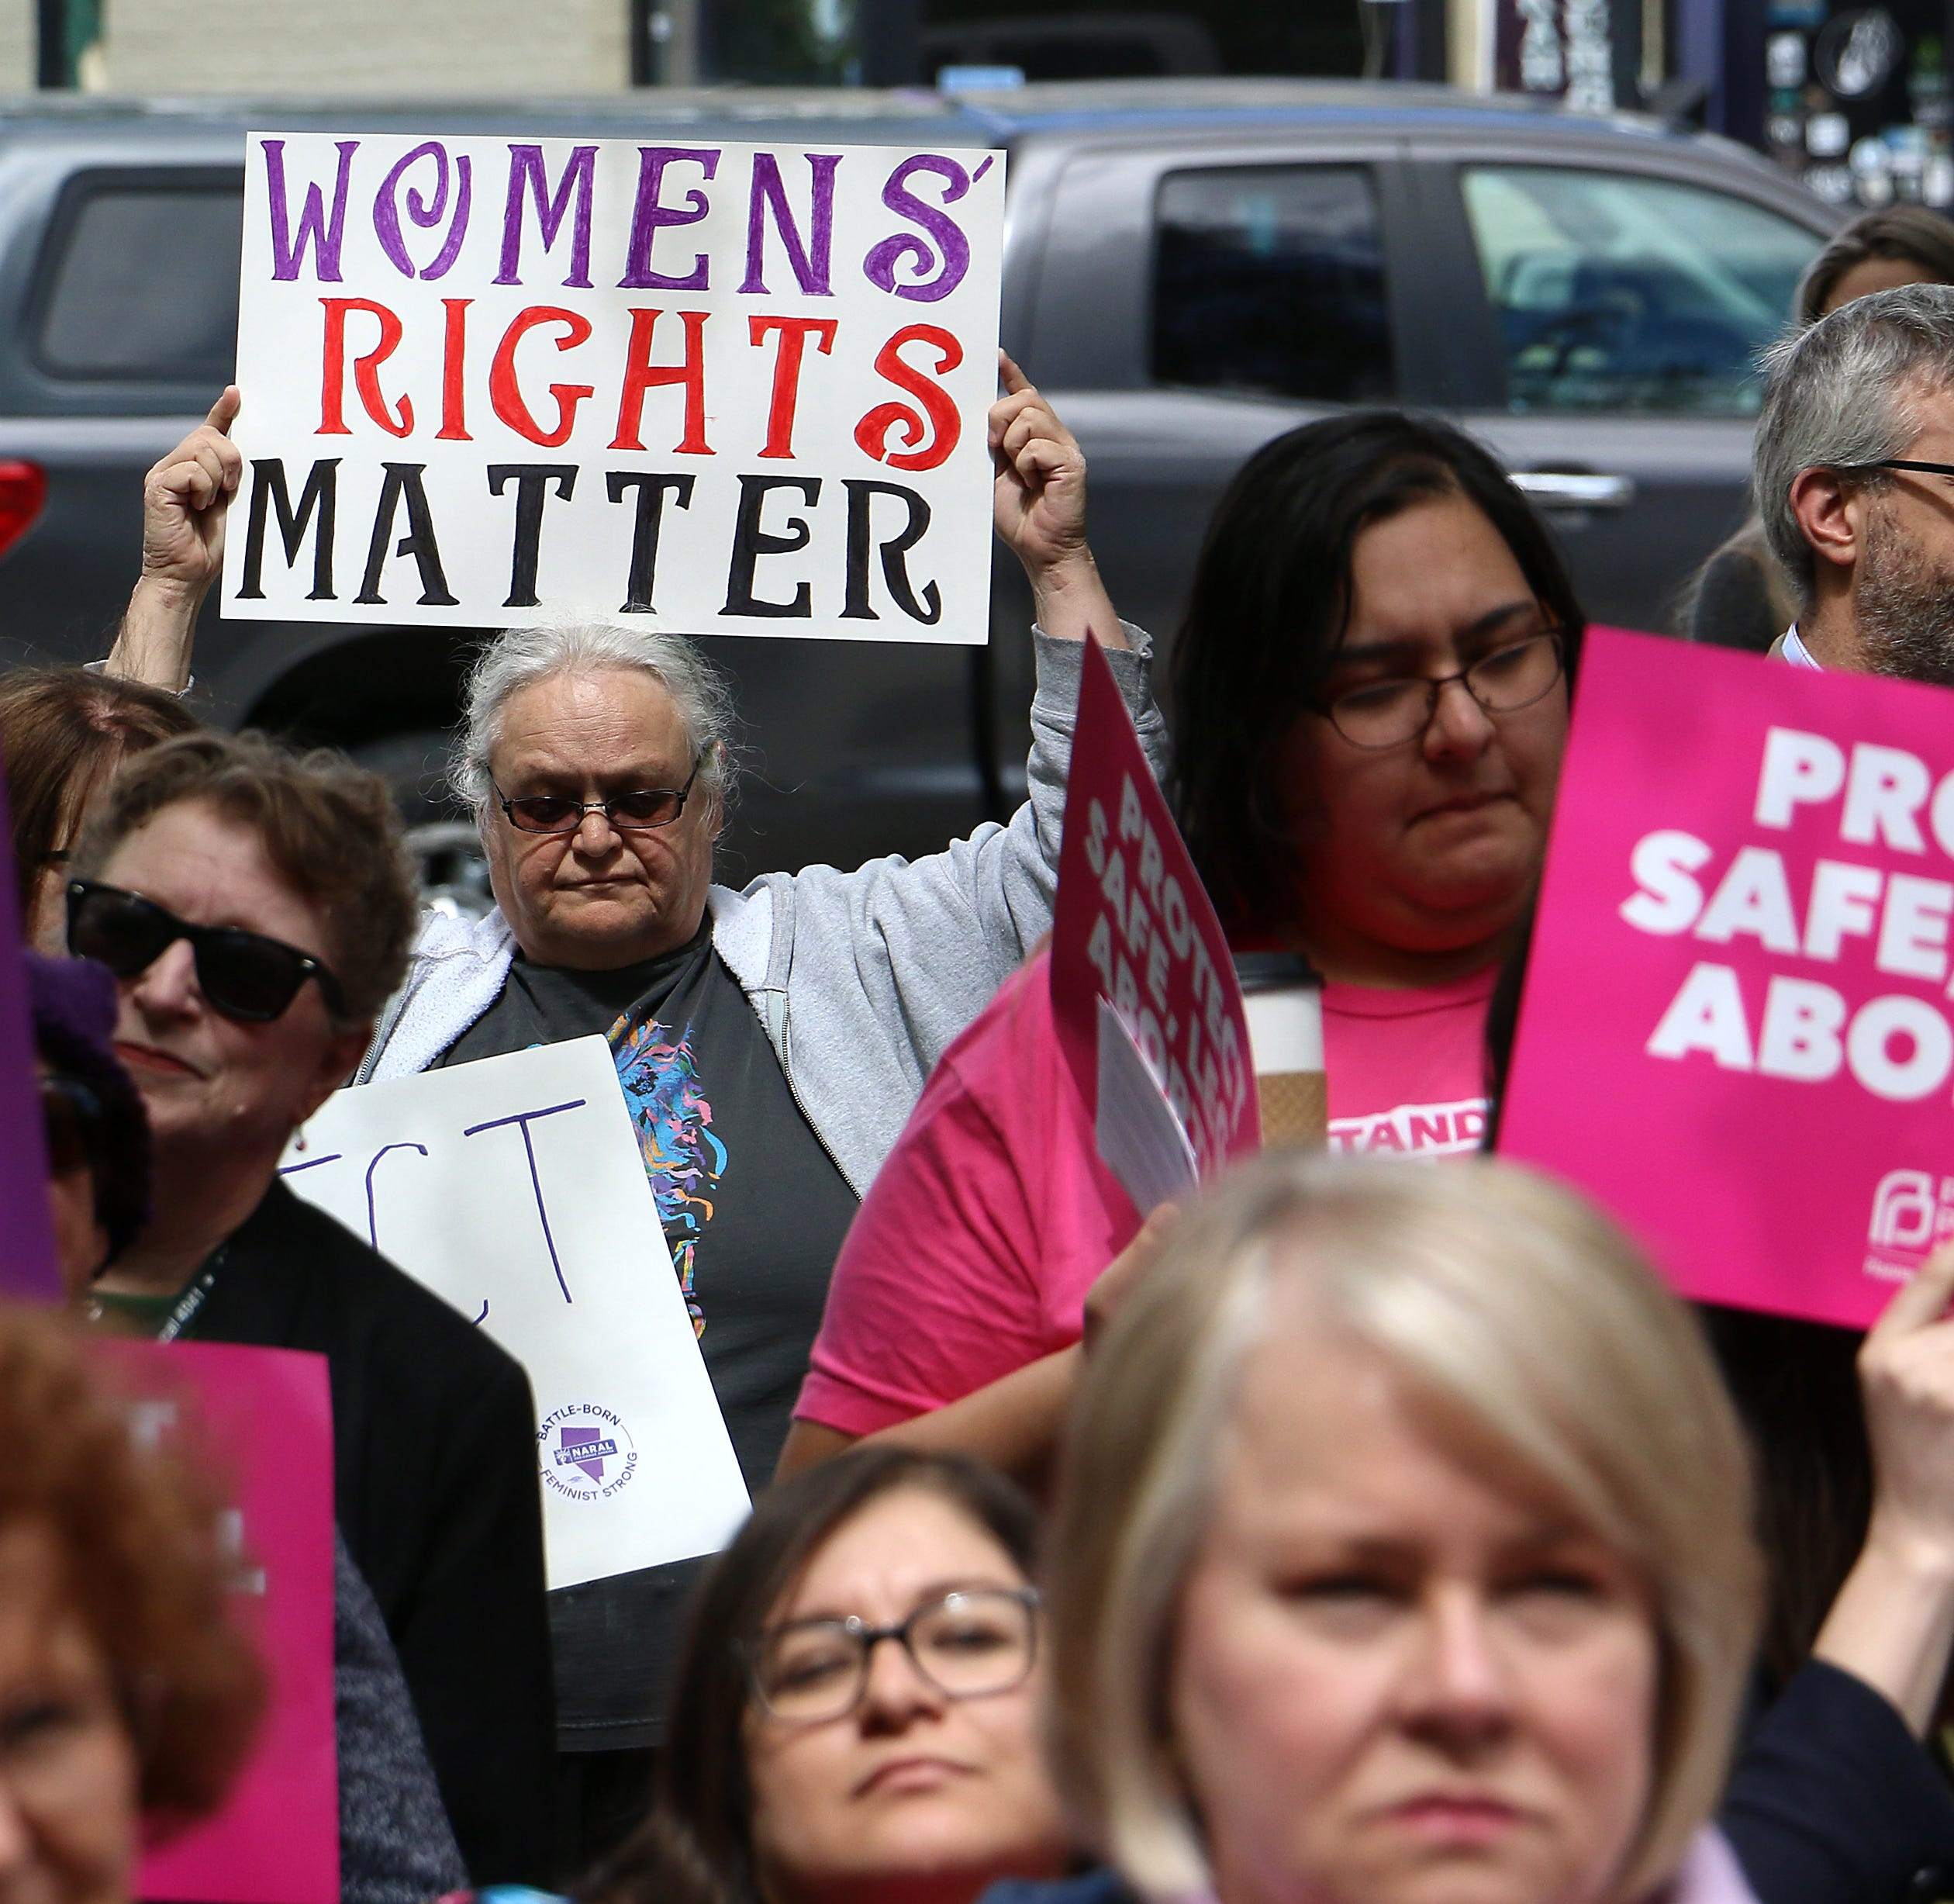 Nevada passes abortion decriminalization bill amid protests against Alabama's abortion ban